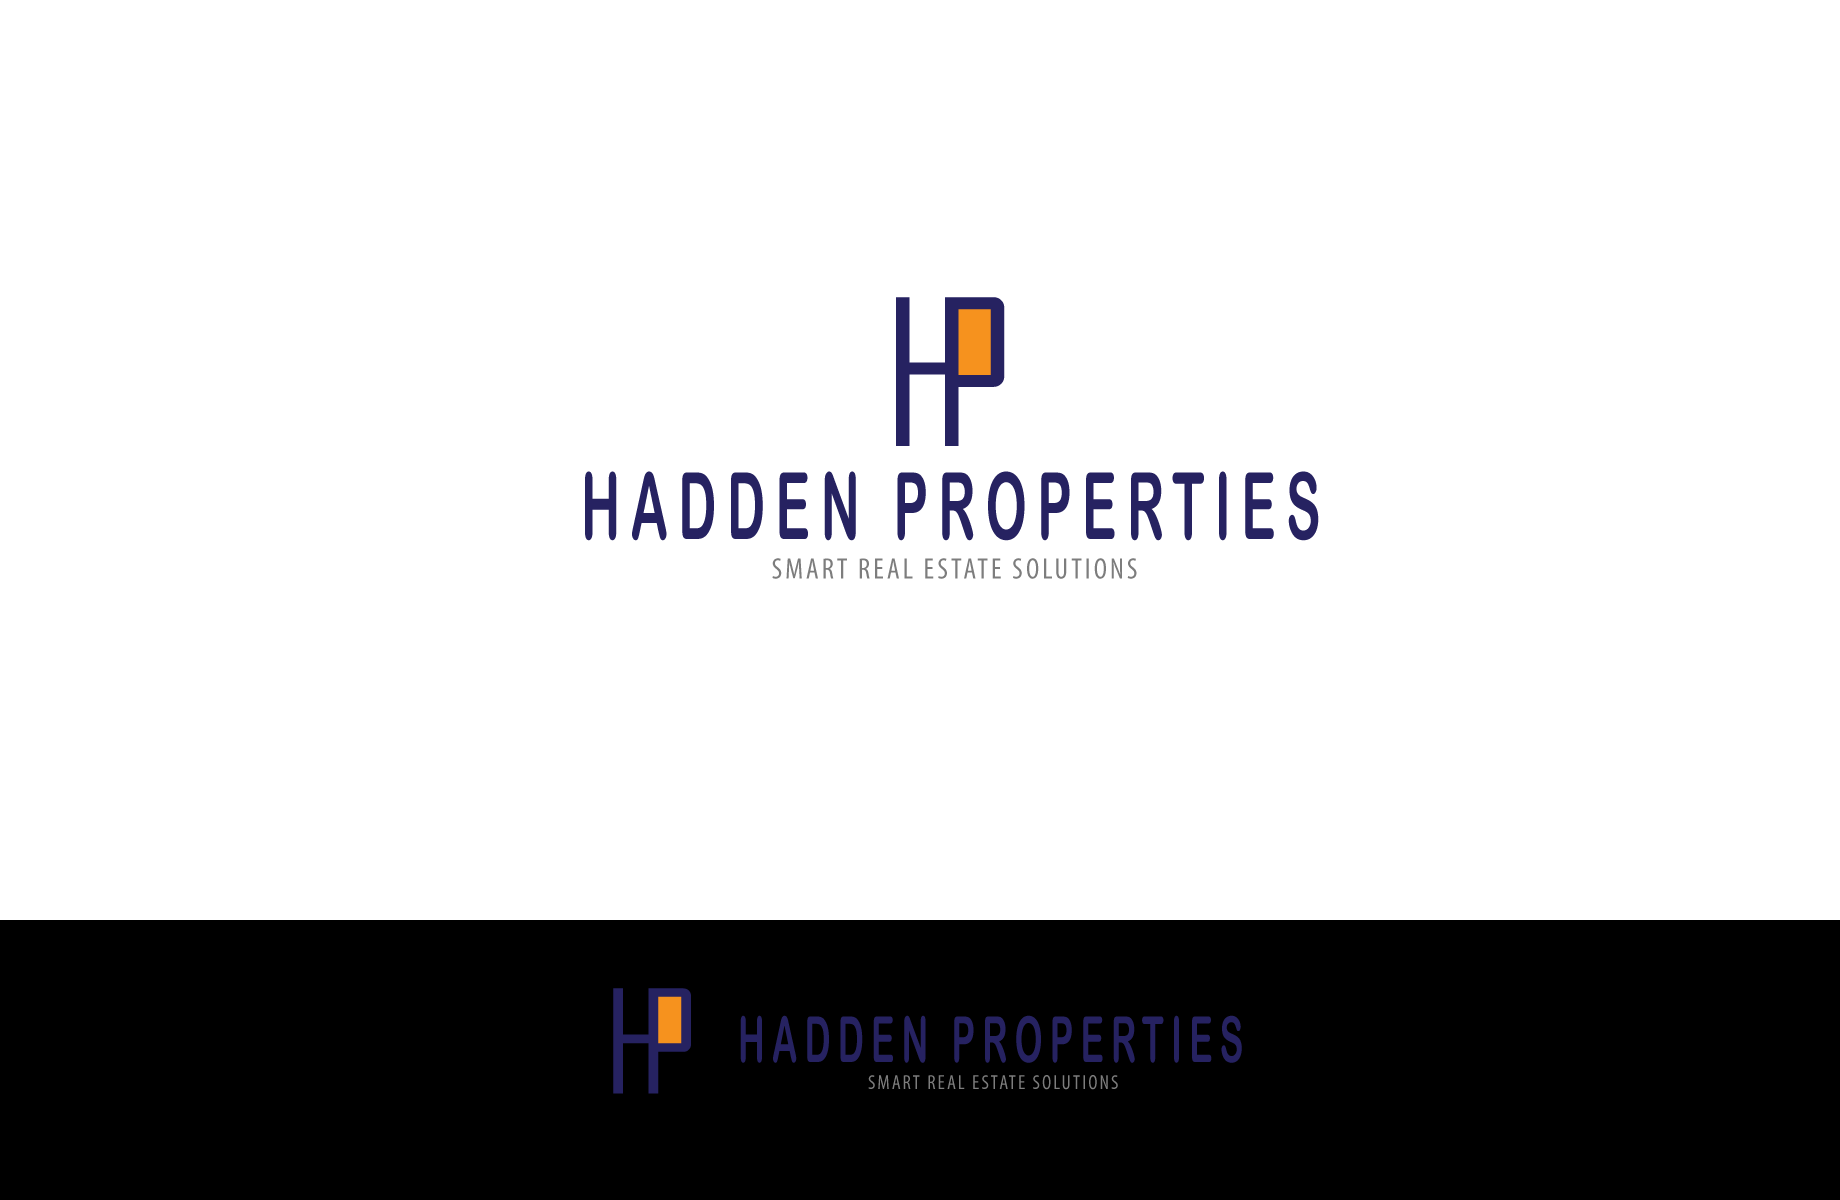 Logo Design by Jan Chua - Entry No. 48 in the Logo Design Contest Artistic Logo Design for Hadden Properties.